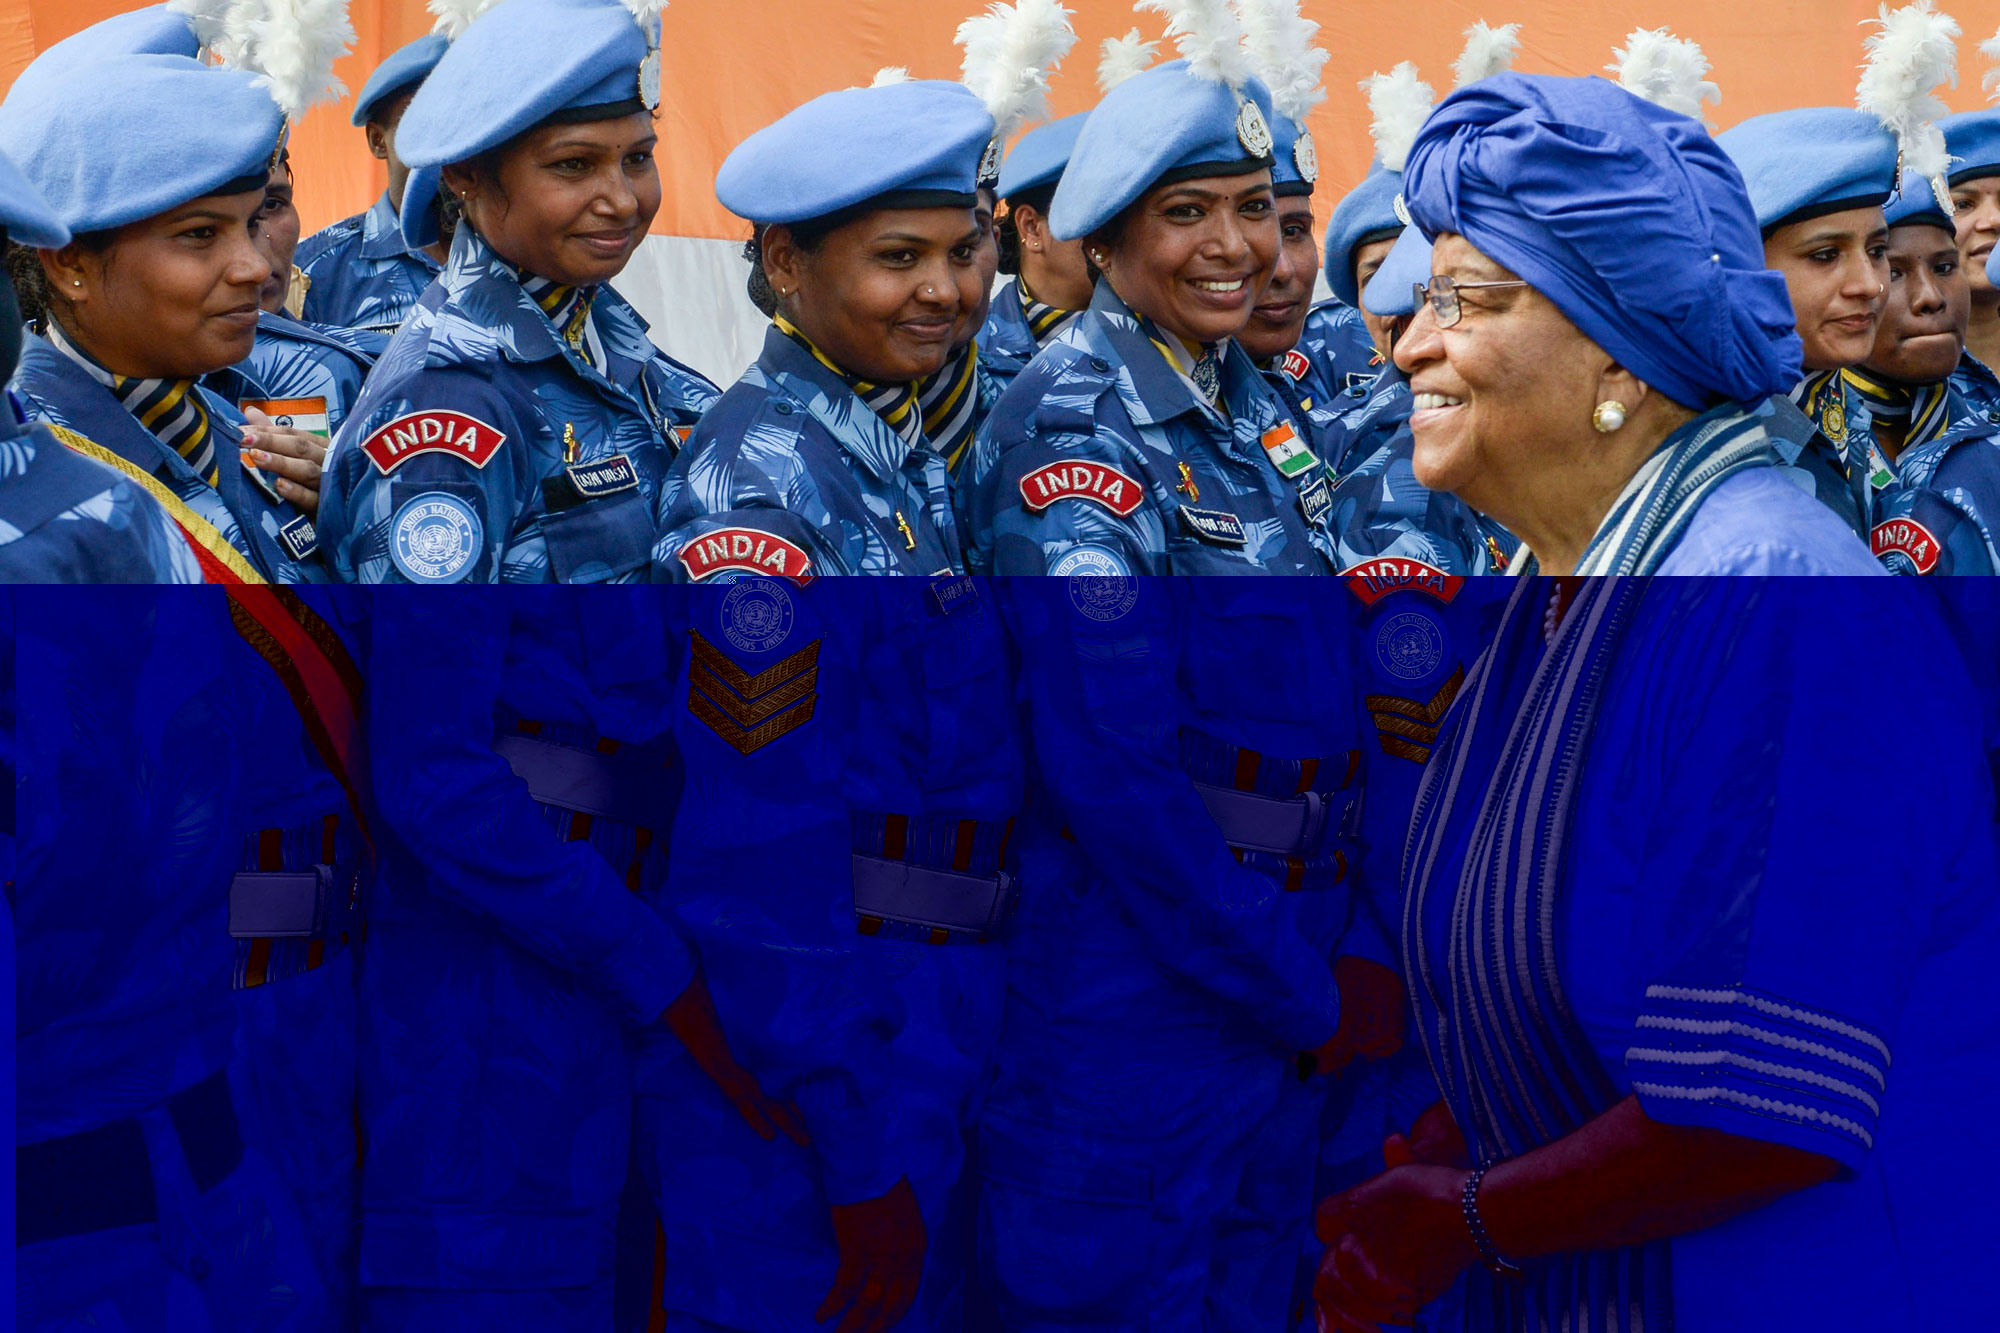 Hailed as 'role models,' all-female Indian police unit departs UN mission in Liberia